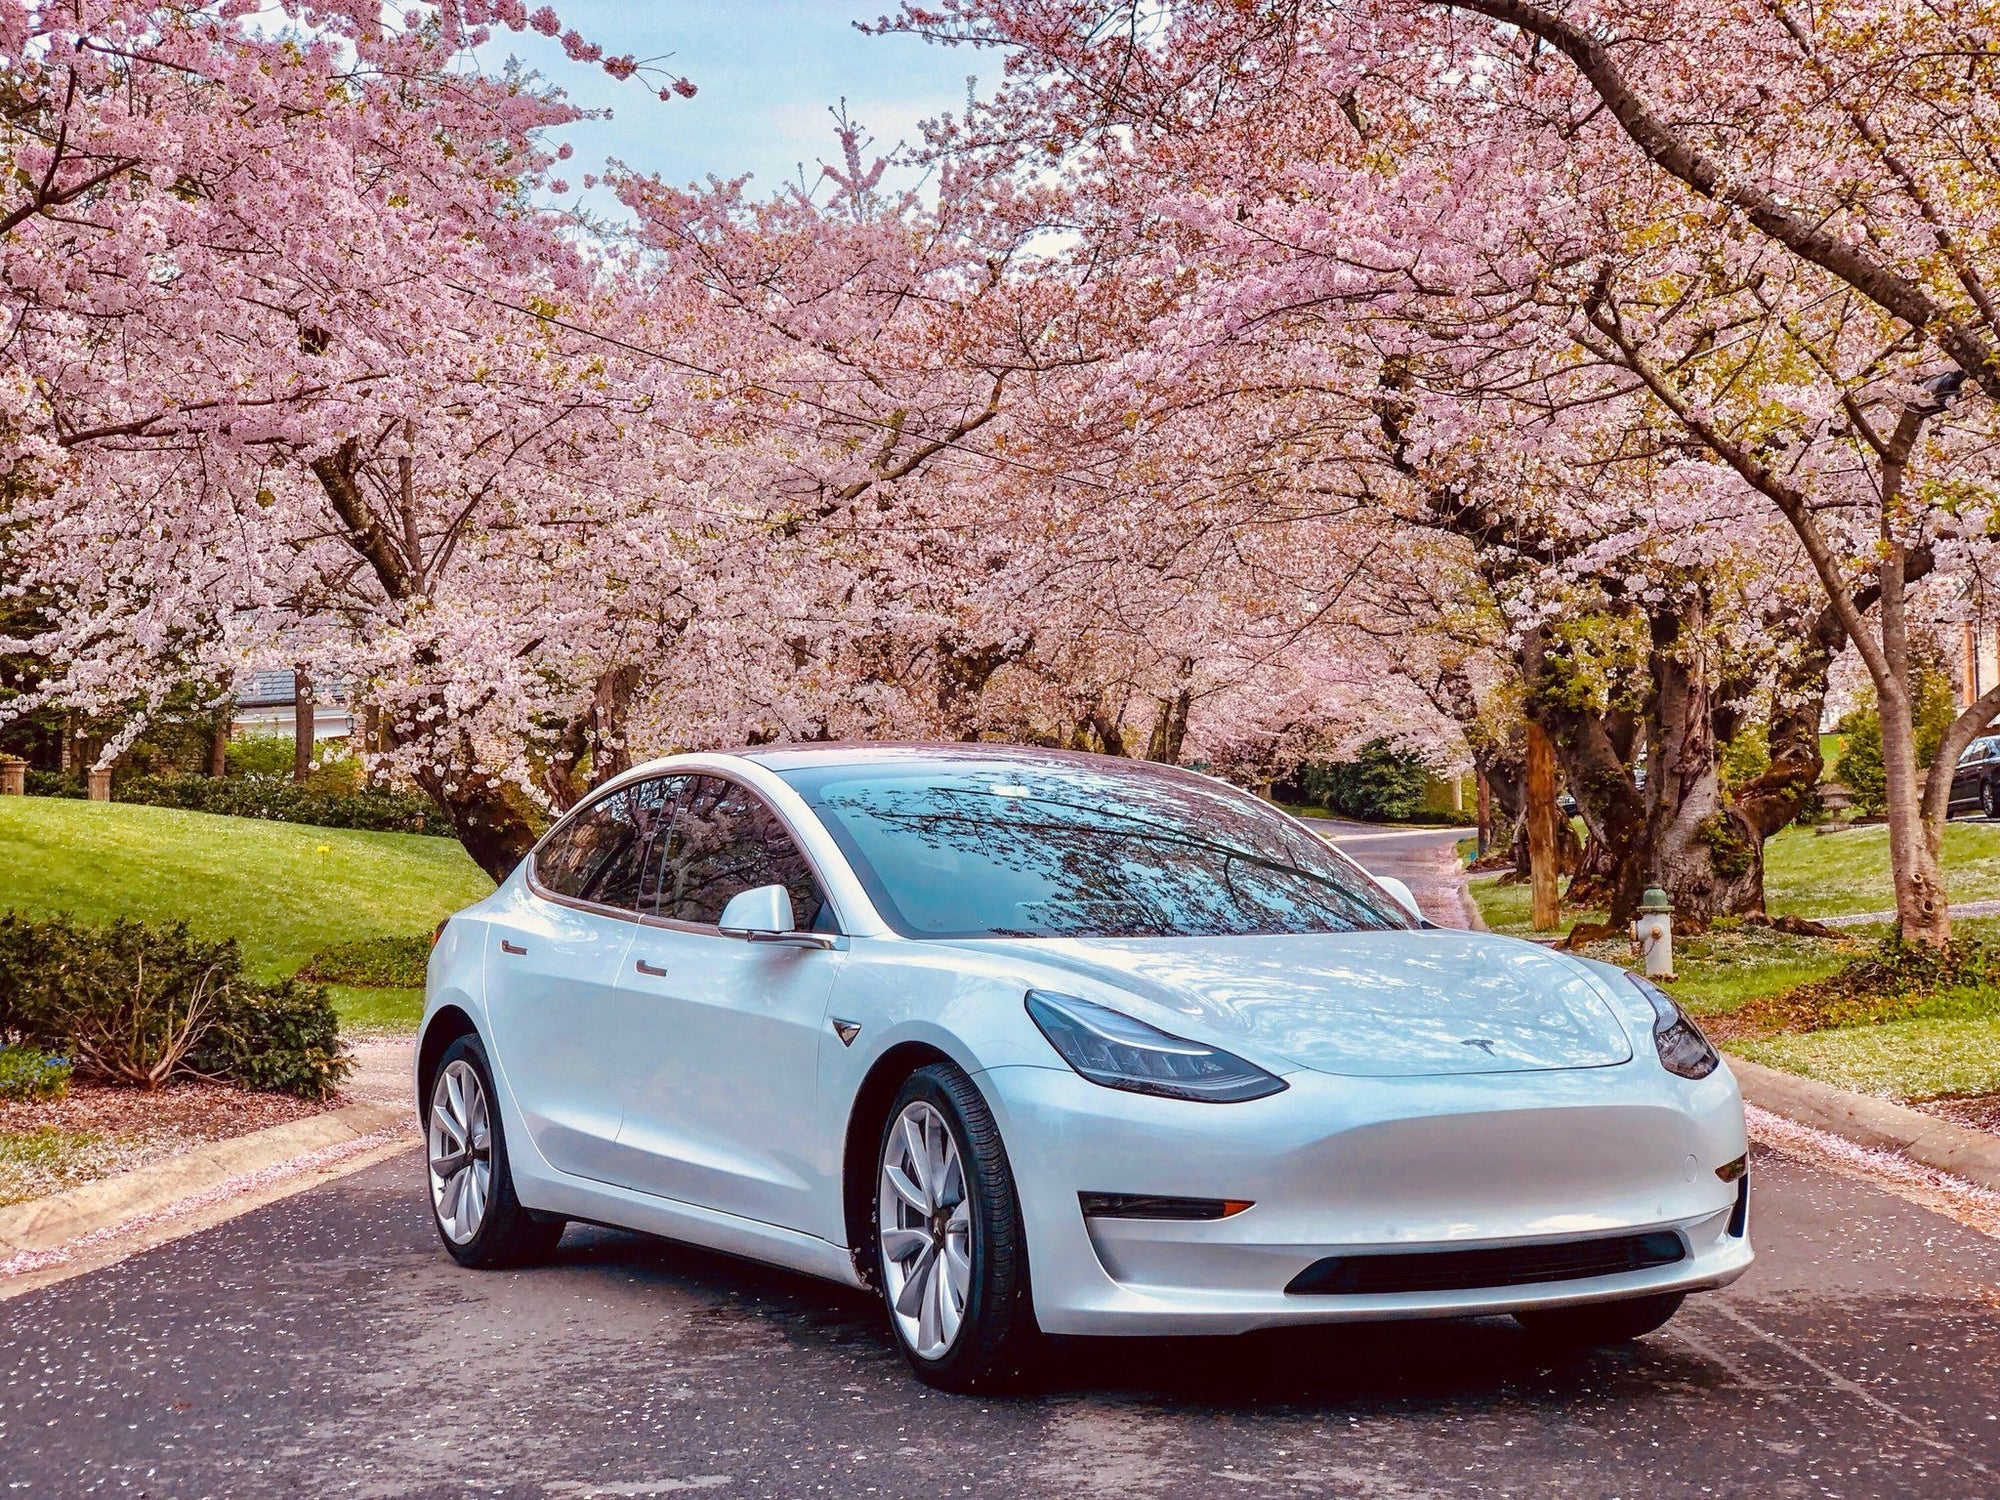 Tesla Model 3 In China Receives Least Complaints vs Top-Selling ICE Cars & EVs